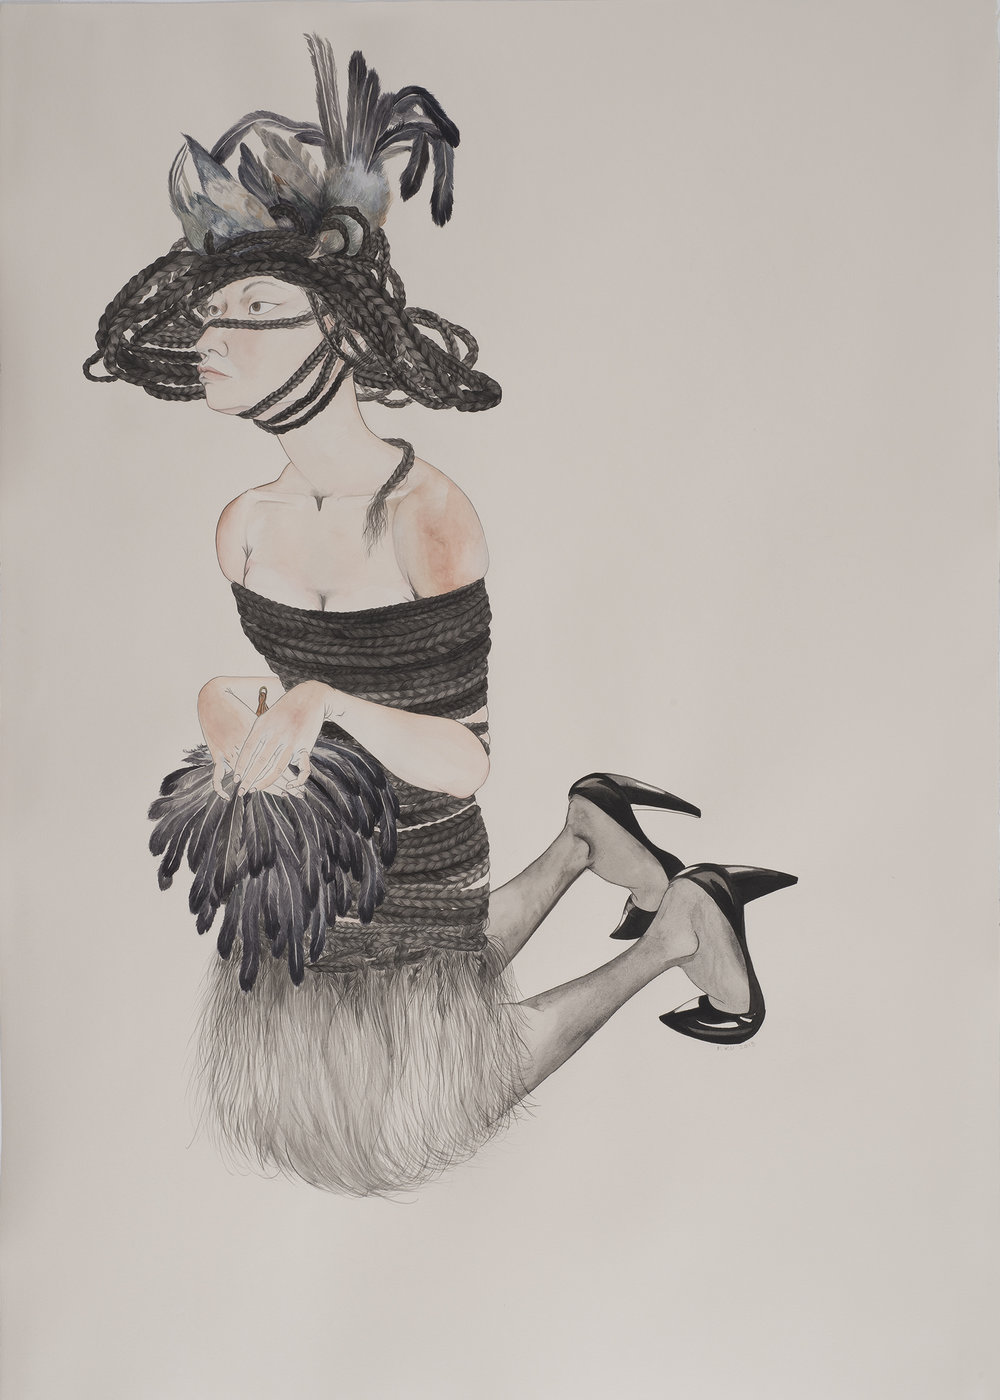 Bird Woman , 2013 Graphite, watercolor, ink on ivory Fabriana Rosaspina 39 x 27.5 inches Photo: Bill Orcutt